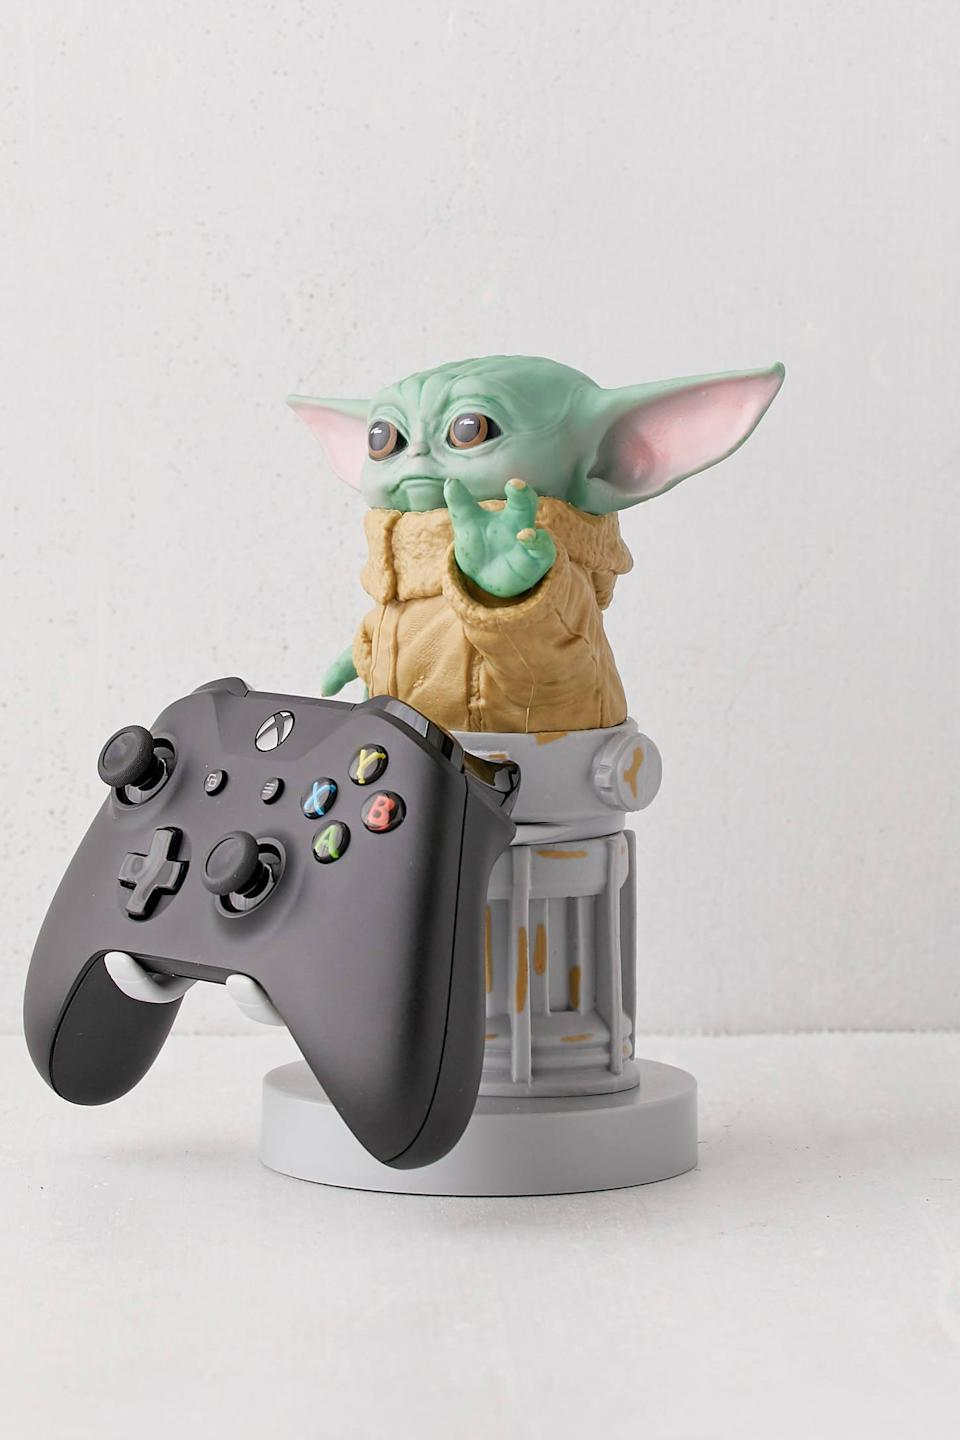 """With Baby Yoda guarding his favorite controller, he'll never have to worry about it getting misplaced again. <br><br><strong>Cable Guys</strong> The Child Device Holder, $, available at <a href=""""https://go.skimresources.com/?id=30283X879131&url=https%3A%2F%2Fwww.urbanoutfitters.com%2Fshop%2Fcable-guys-the-child-device-holder%3Fcategory%3Dgifts-for-men%26color%3D030%26type%3DREGULAR%26size%3DONE%2520SIZE%26quantity%3D1"""" rel=""""nofollow noopener"""" target=""""_blank"""" data-ylk=""""slk:Urban Outfitters"""" class=""""link rapid-noclick-resp"""">Urban Outfitters</a>"""